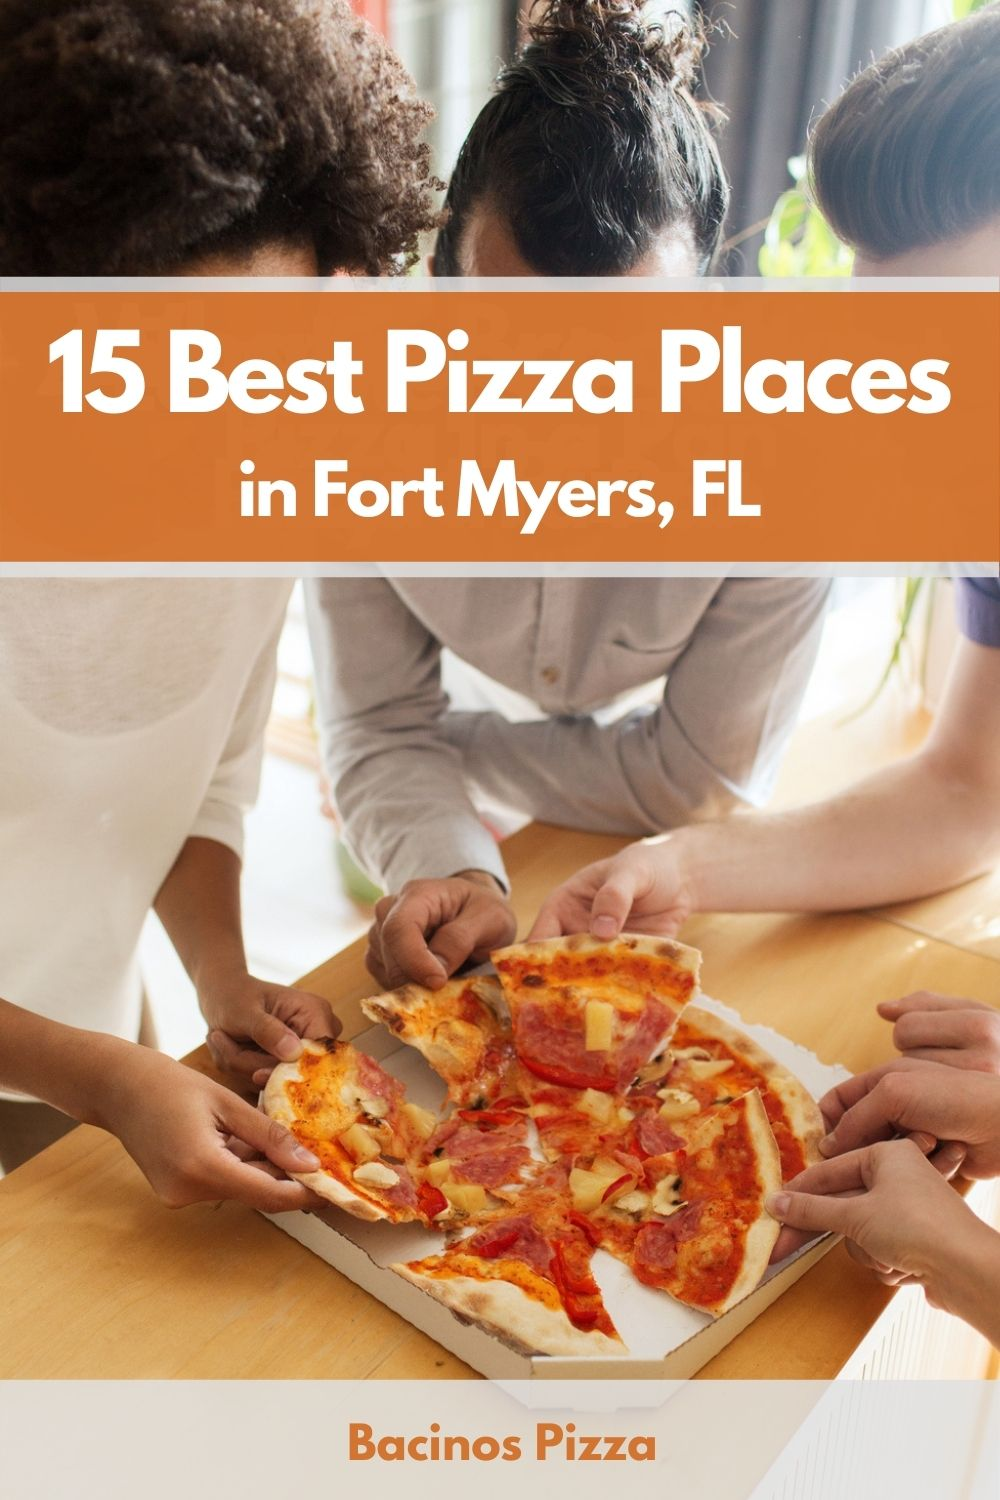 15 Best Pizza Places in Fort Myers, FL pin